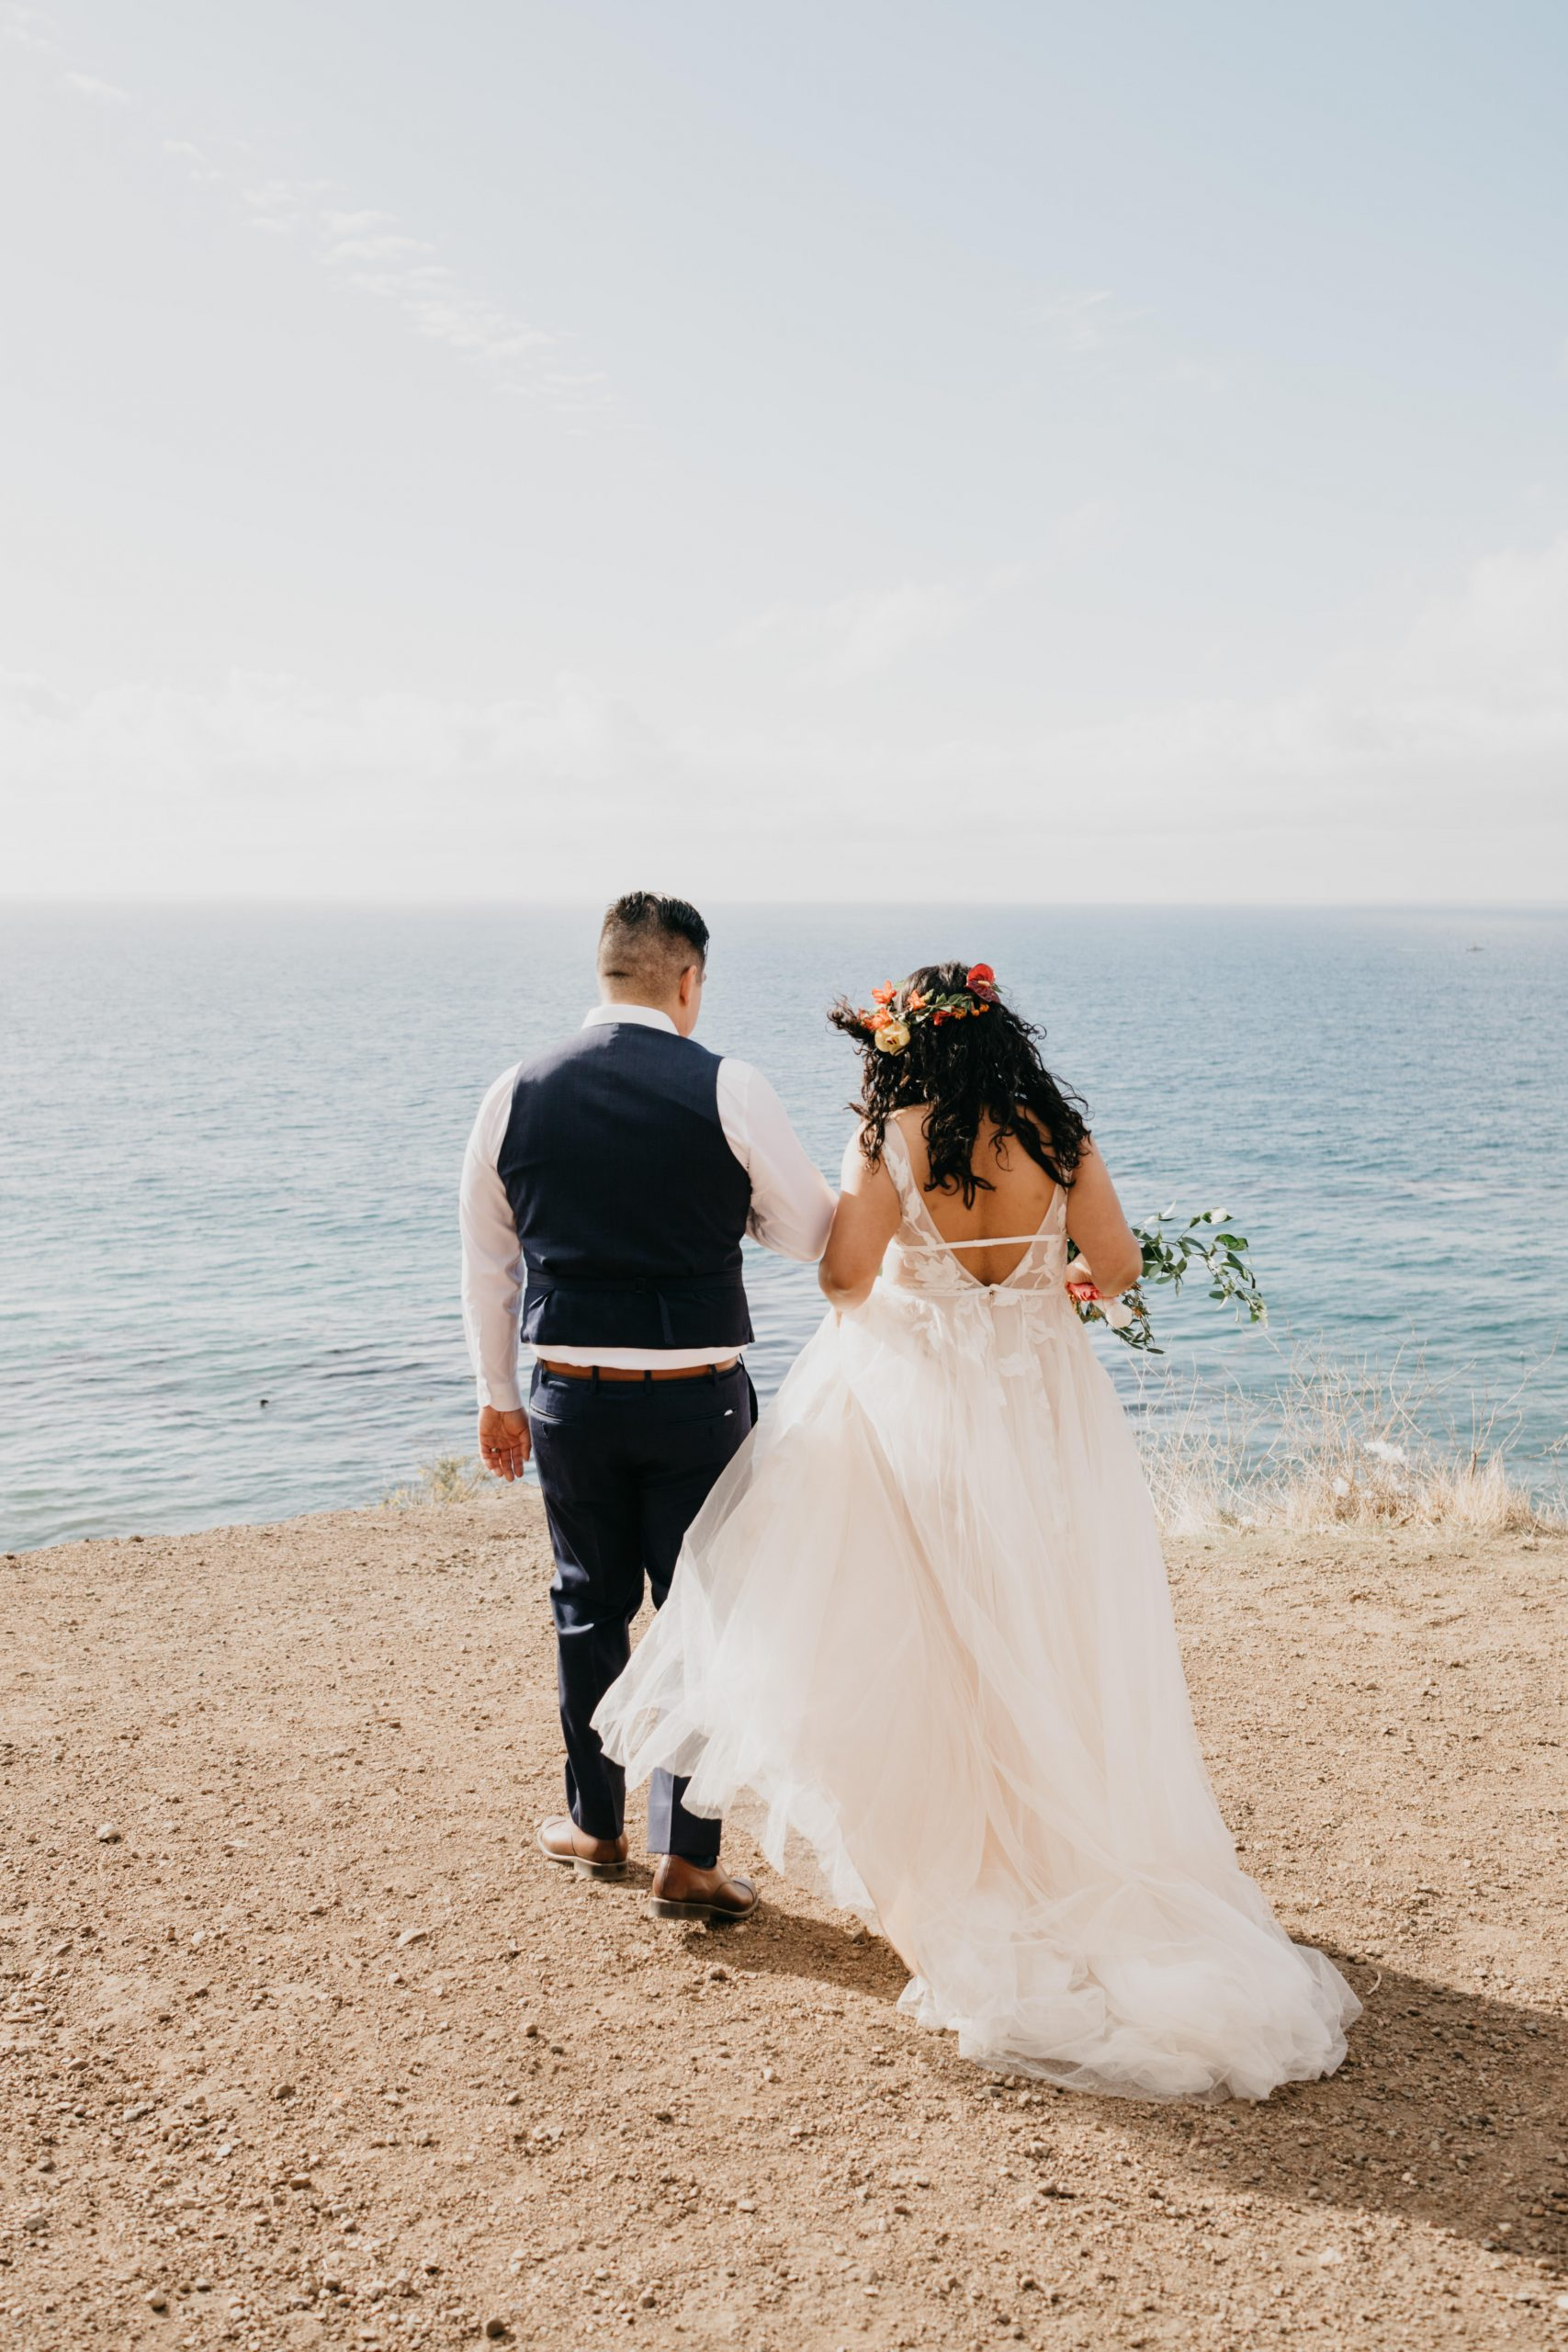 Bride and Groom Elopement in Malibu, image by Fatima Elreda Photo